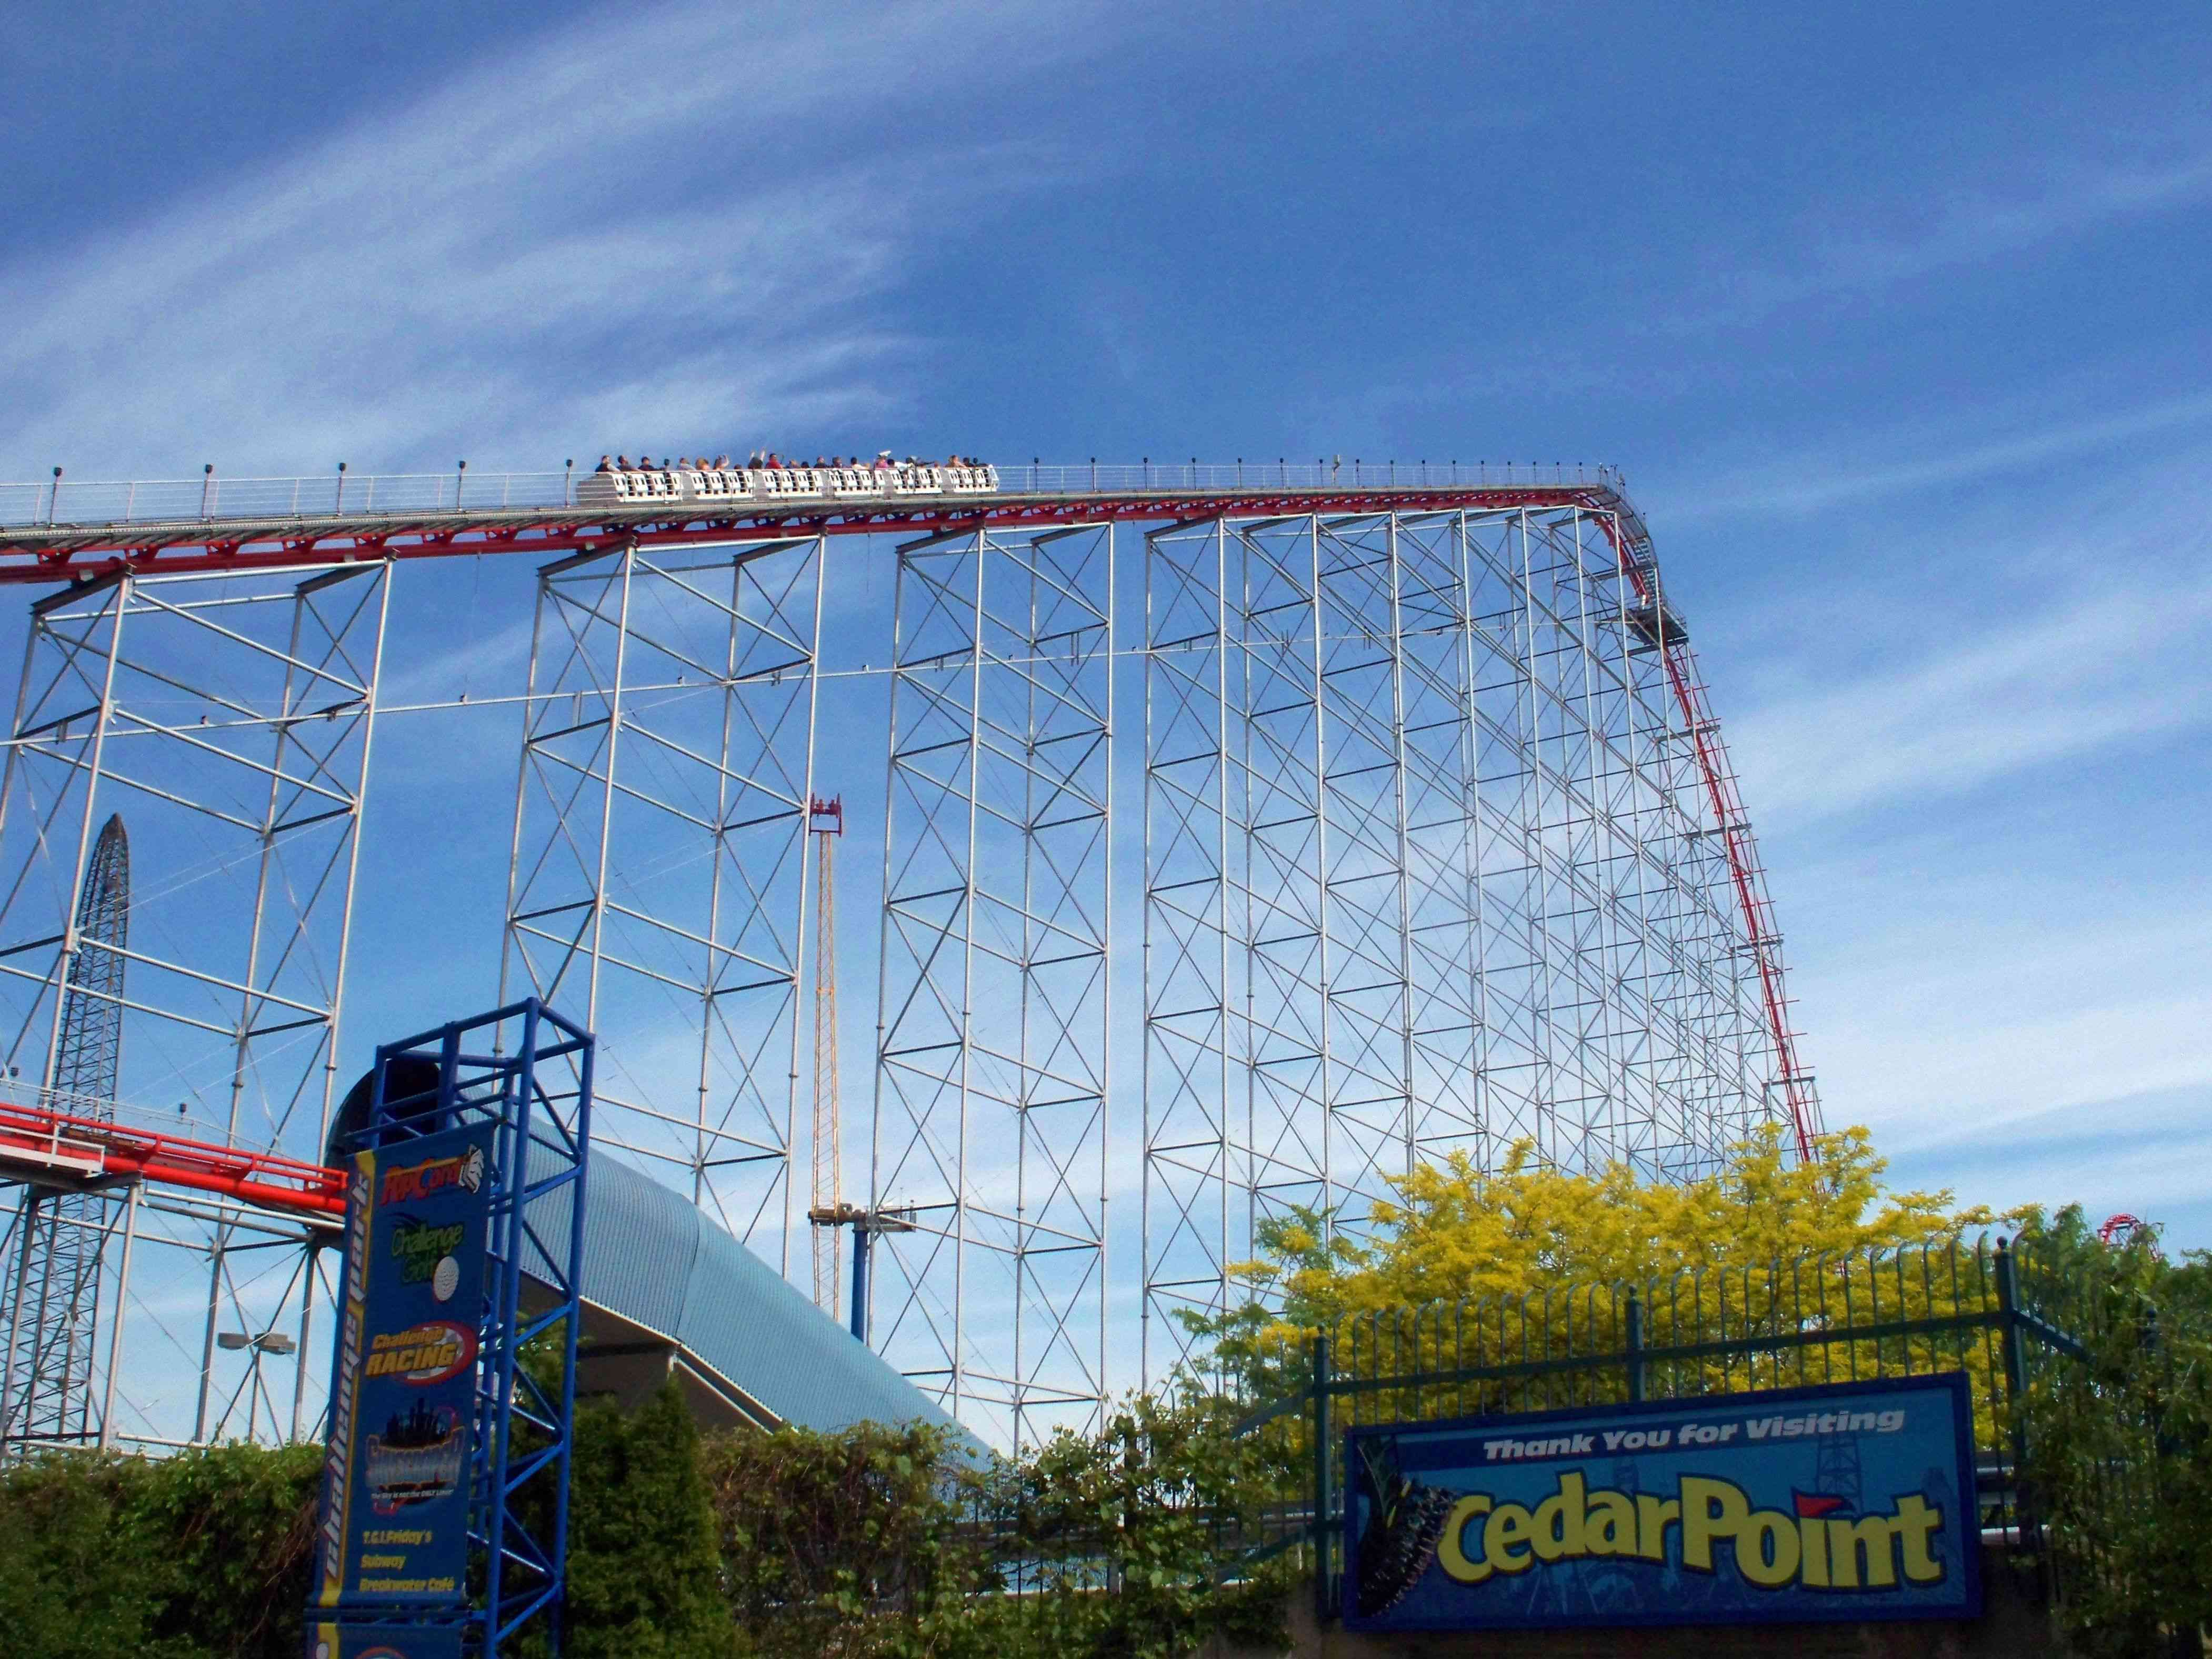 First hill and drop of Magnum XL-200 coaster